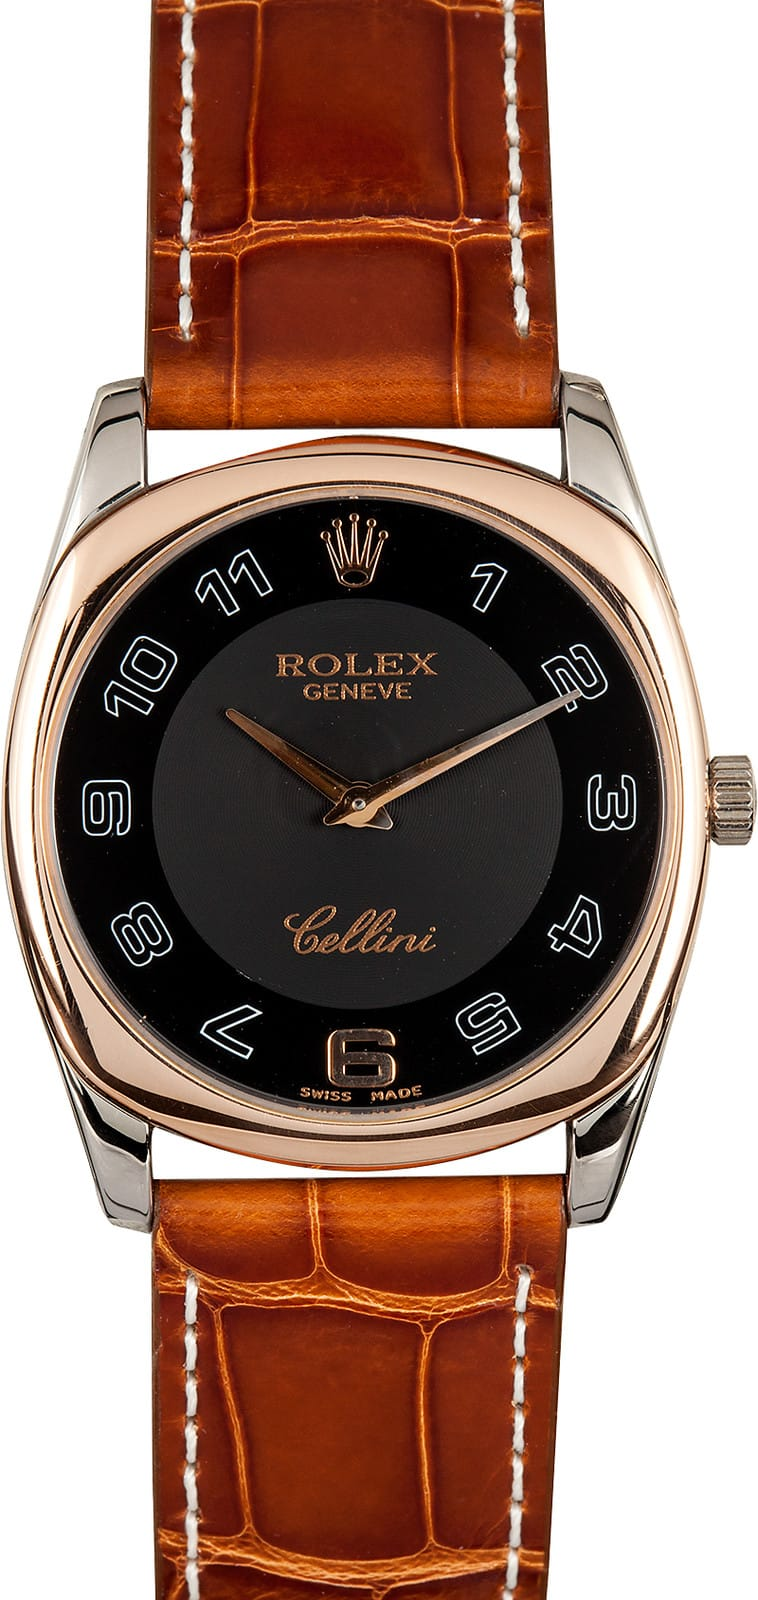 Rolex Daneos Cellini 4233  Buy It At Bob's Watches And